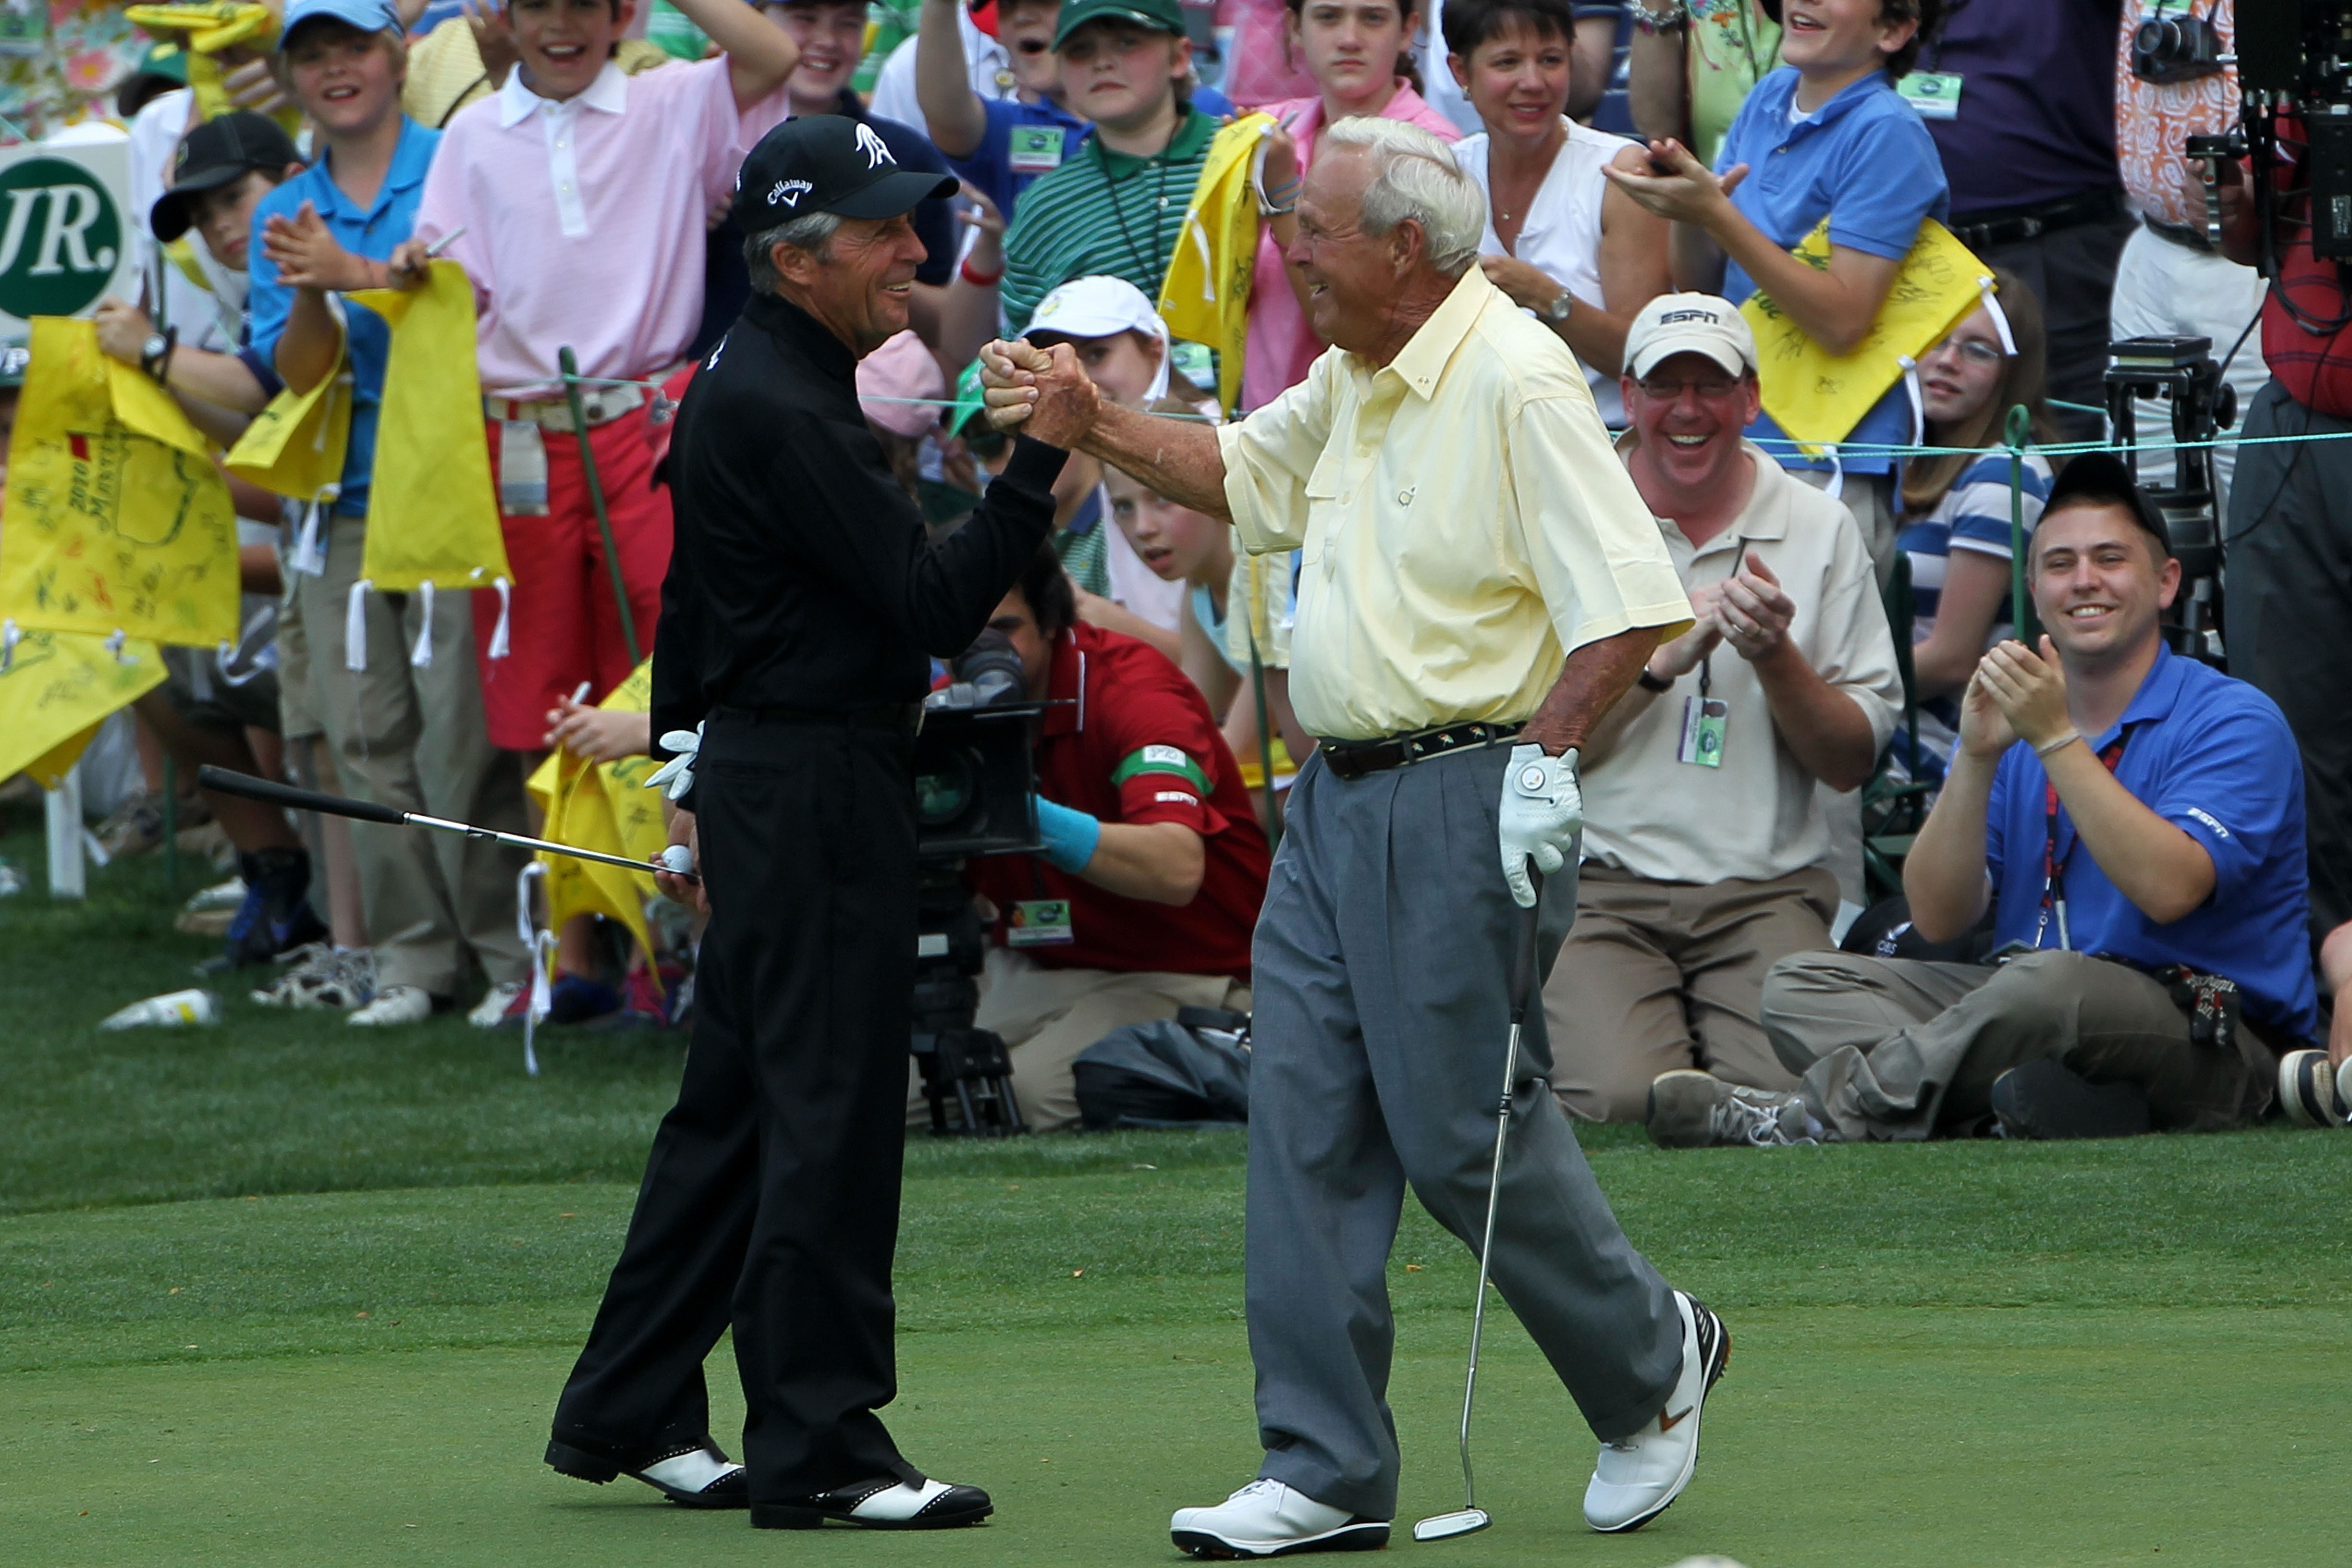 AUGUSTA, GA - APRIL 07:  Gary Player (L) congratulates Arnold Palmer on sinking a long birdie putt during the Par 3 Contest prior to the 2010 Masters Tournament at Augusta National Golf Club on April 7, 2010 in Augusta, Georgia.  (Photo by Jamie Squire/Ge